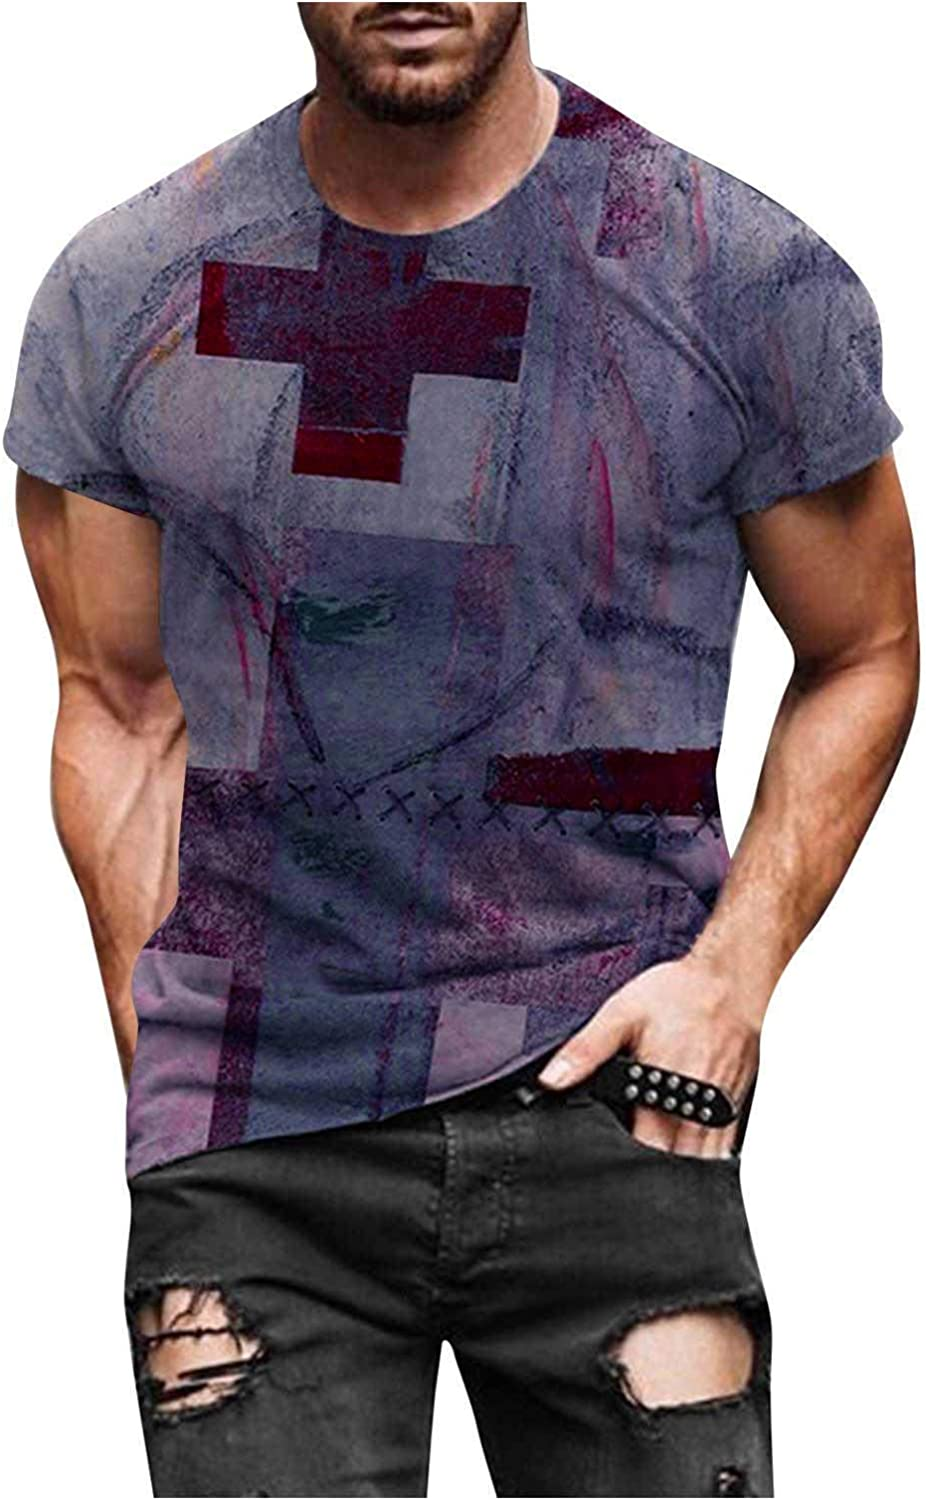 Aayomet Men's T Shirts Fashion Graphic Short Sleeve Sleeve Round Neck T-Shirt Casual Sport Workout Athletic Tee Shirts Tops